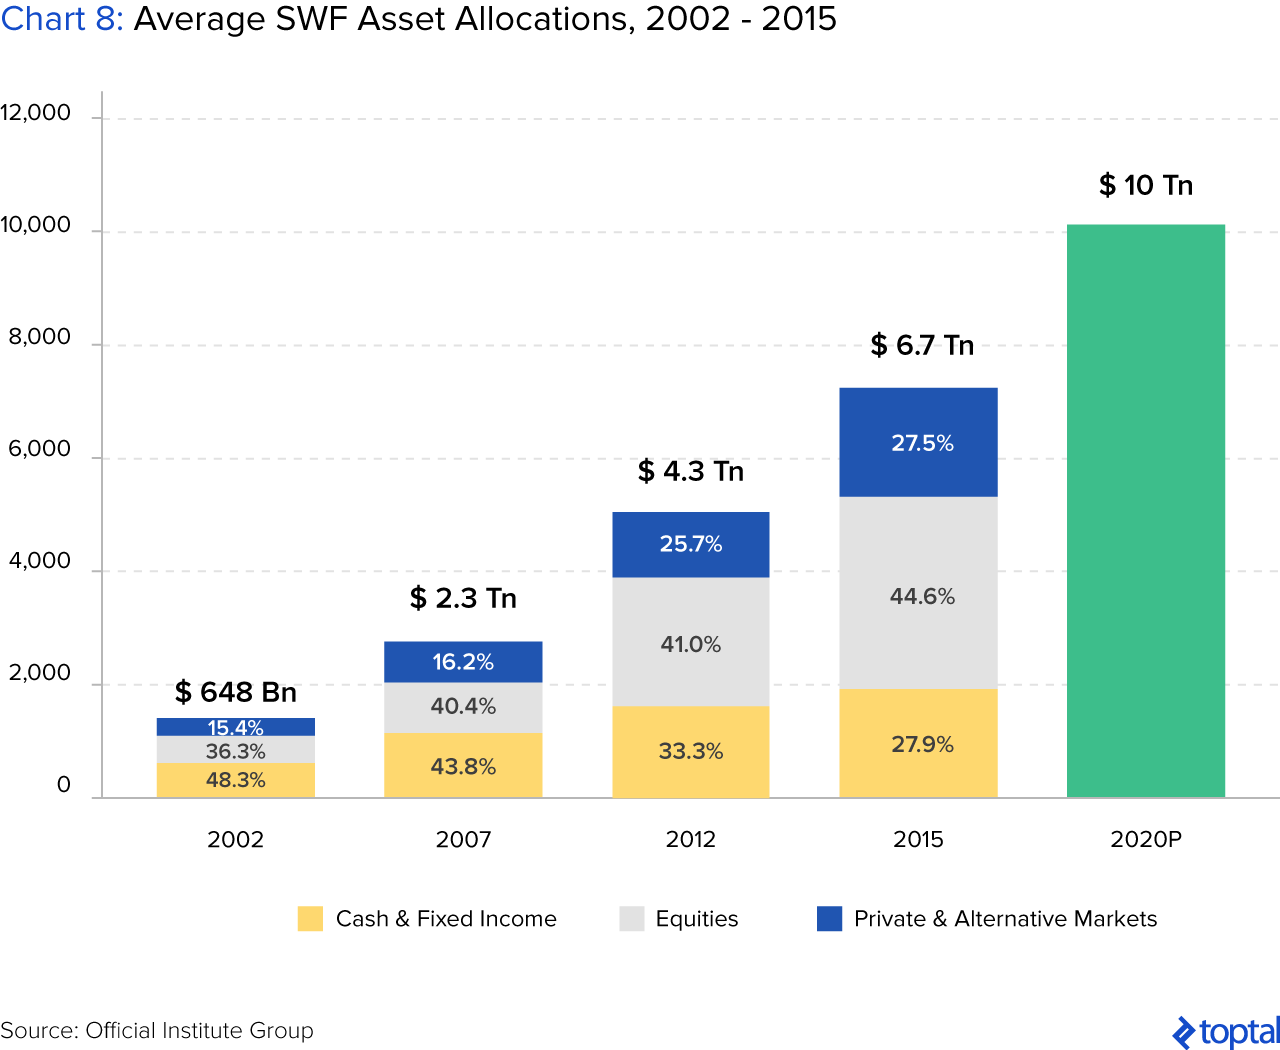 Chart 8: Average SWF Asset Allocations, 2002 to 2015